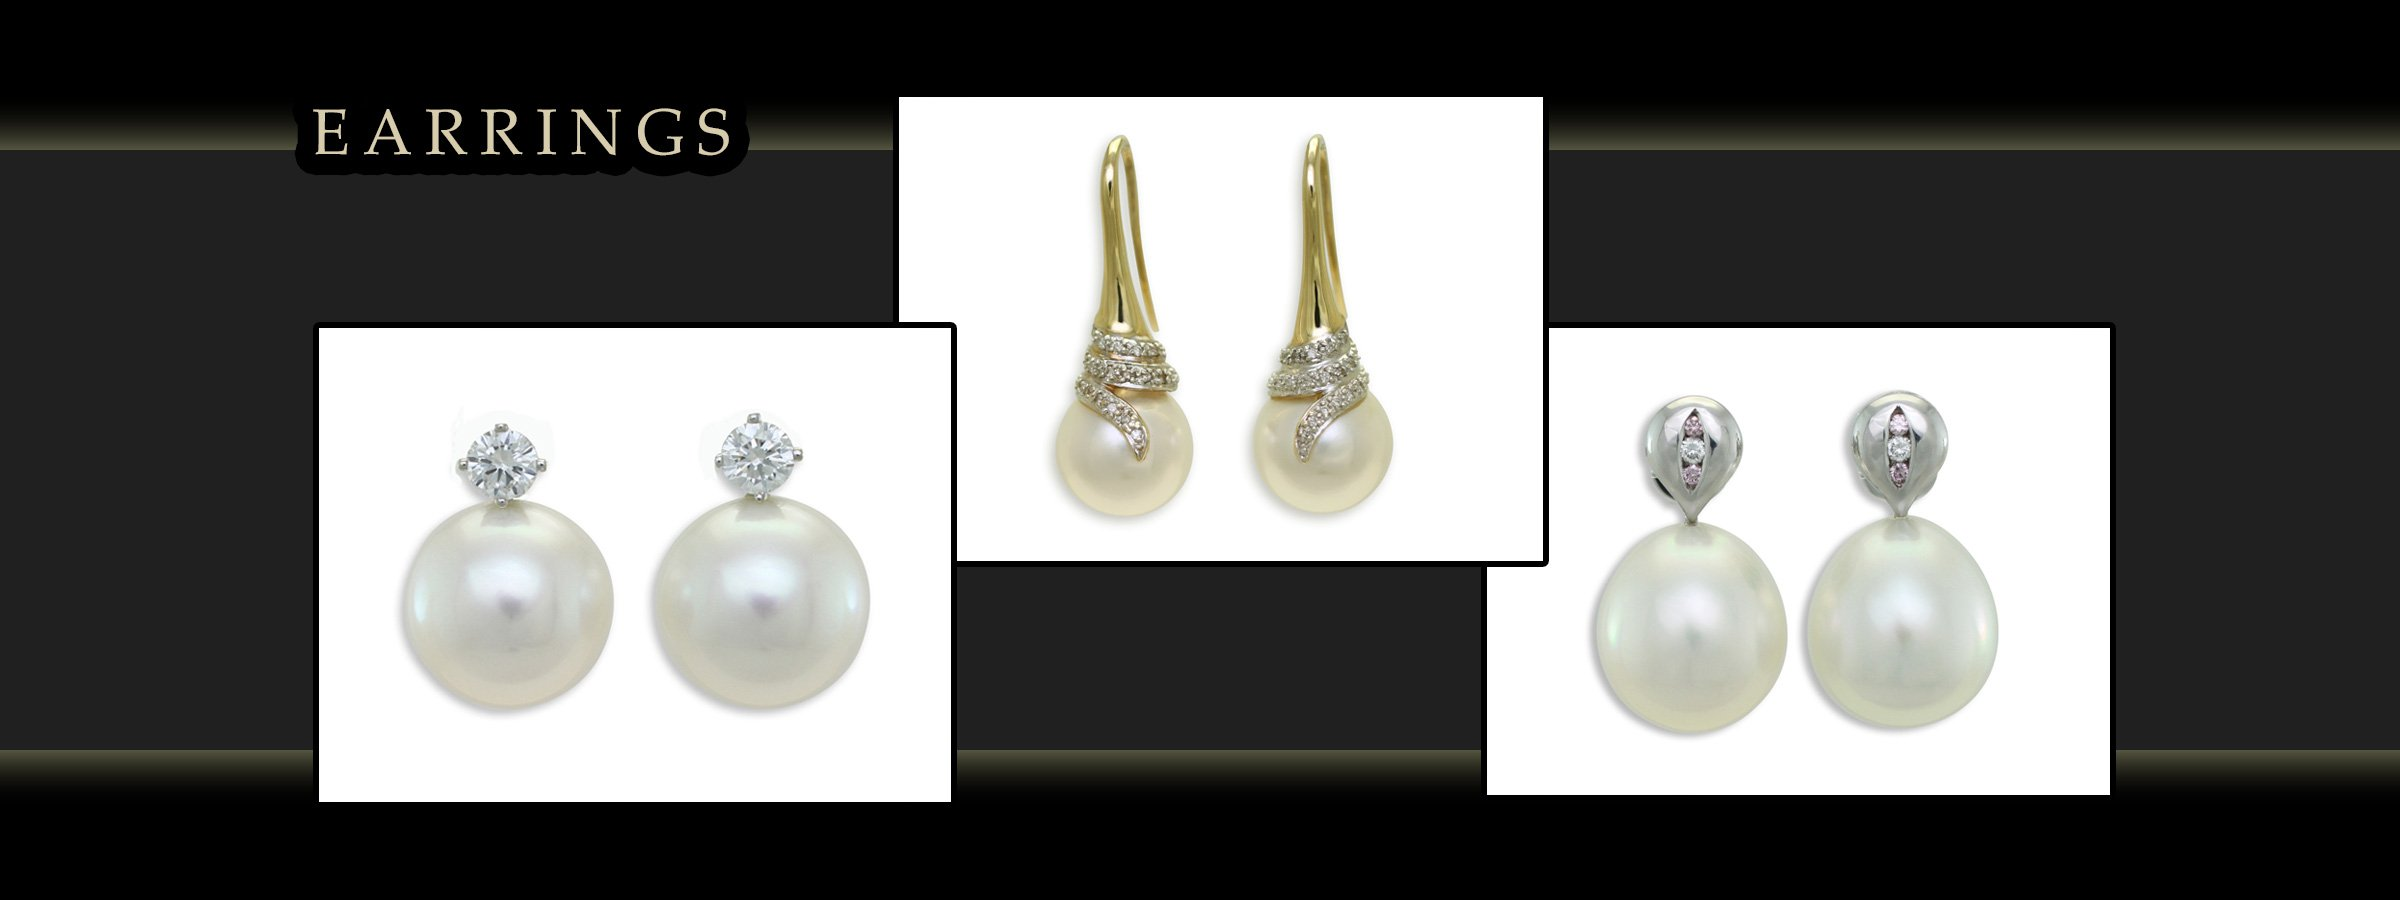 girls love pearls earrings with white and yellow gold images